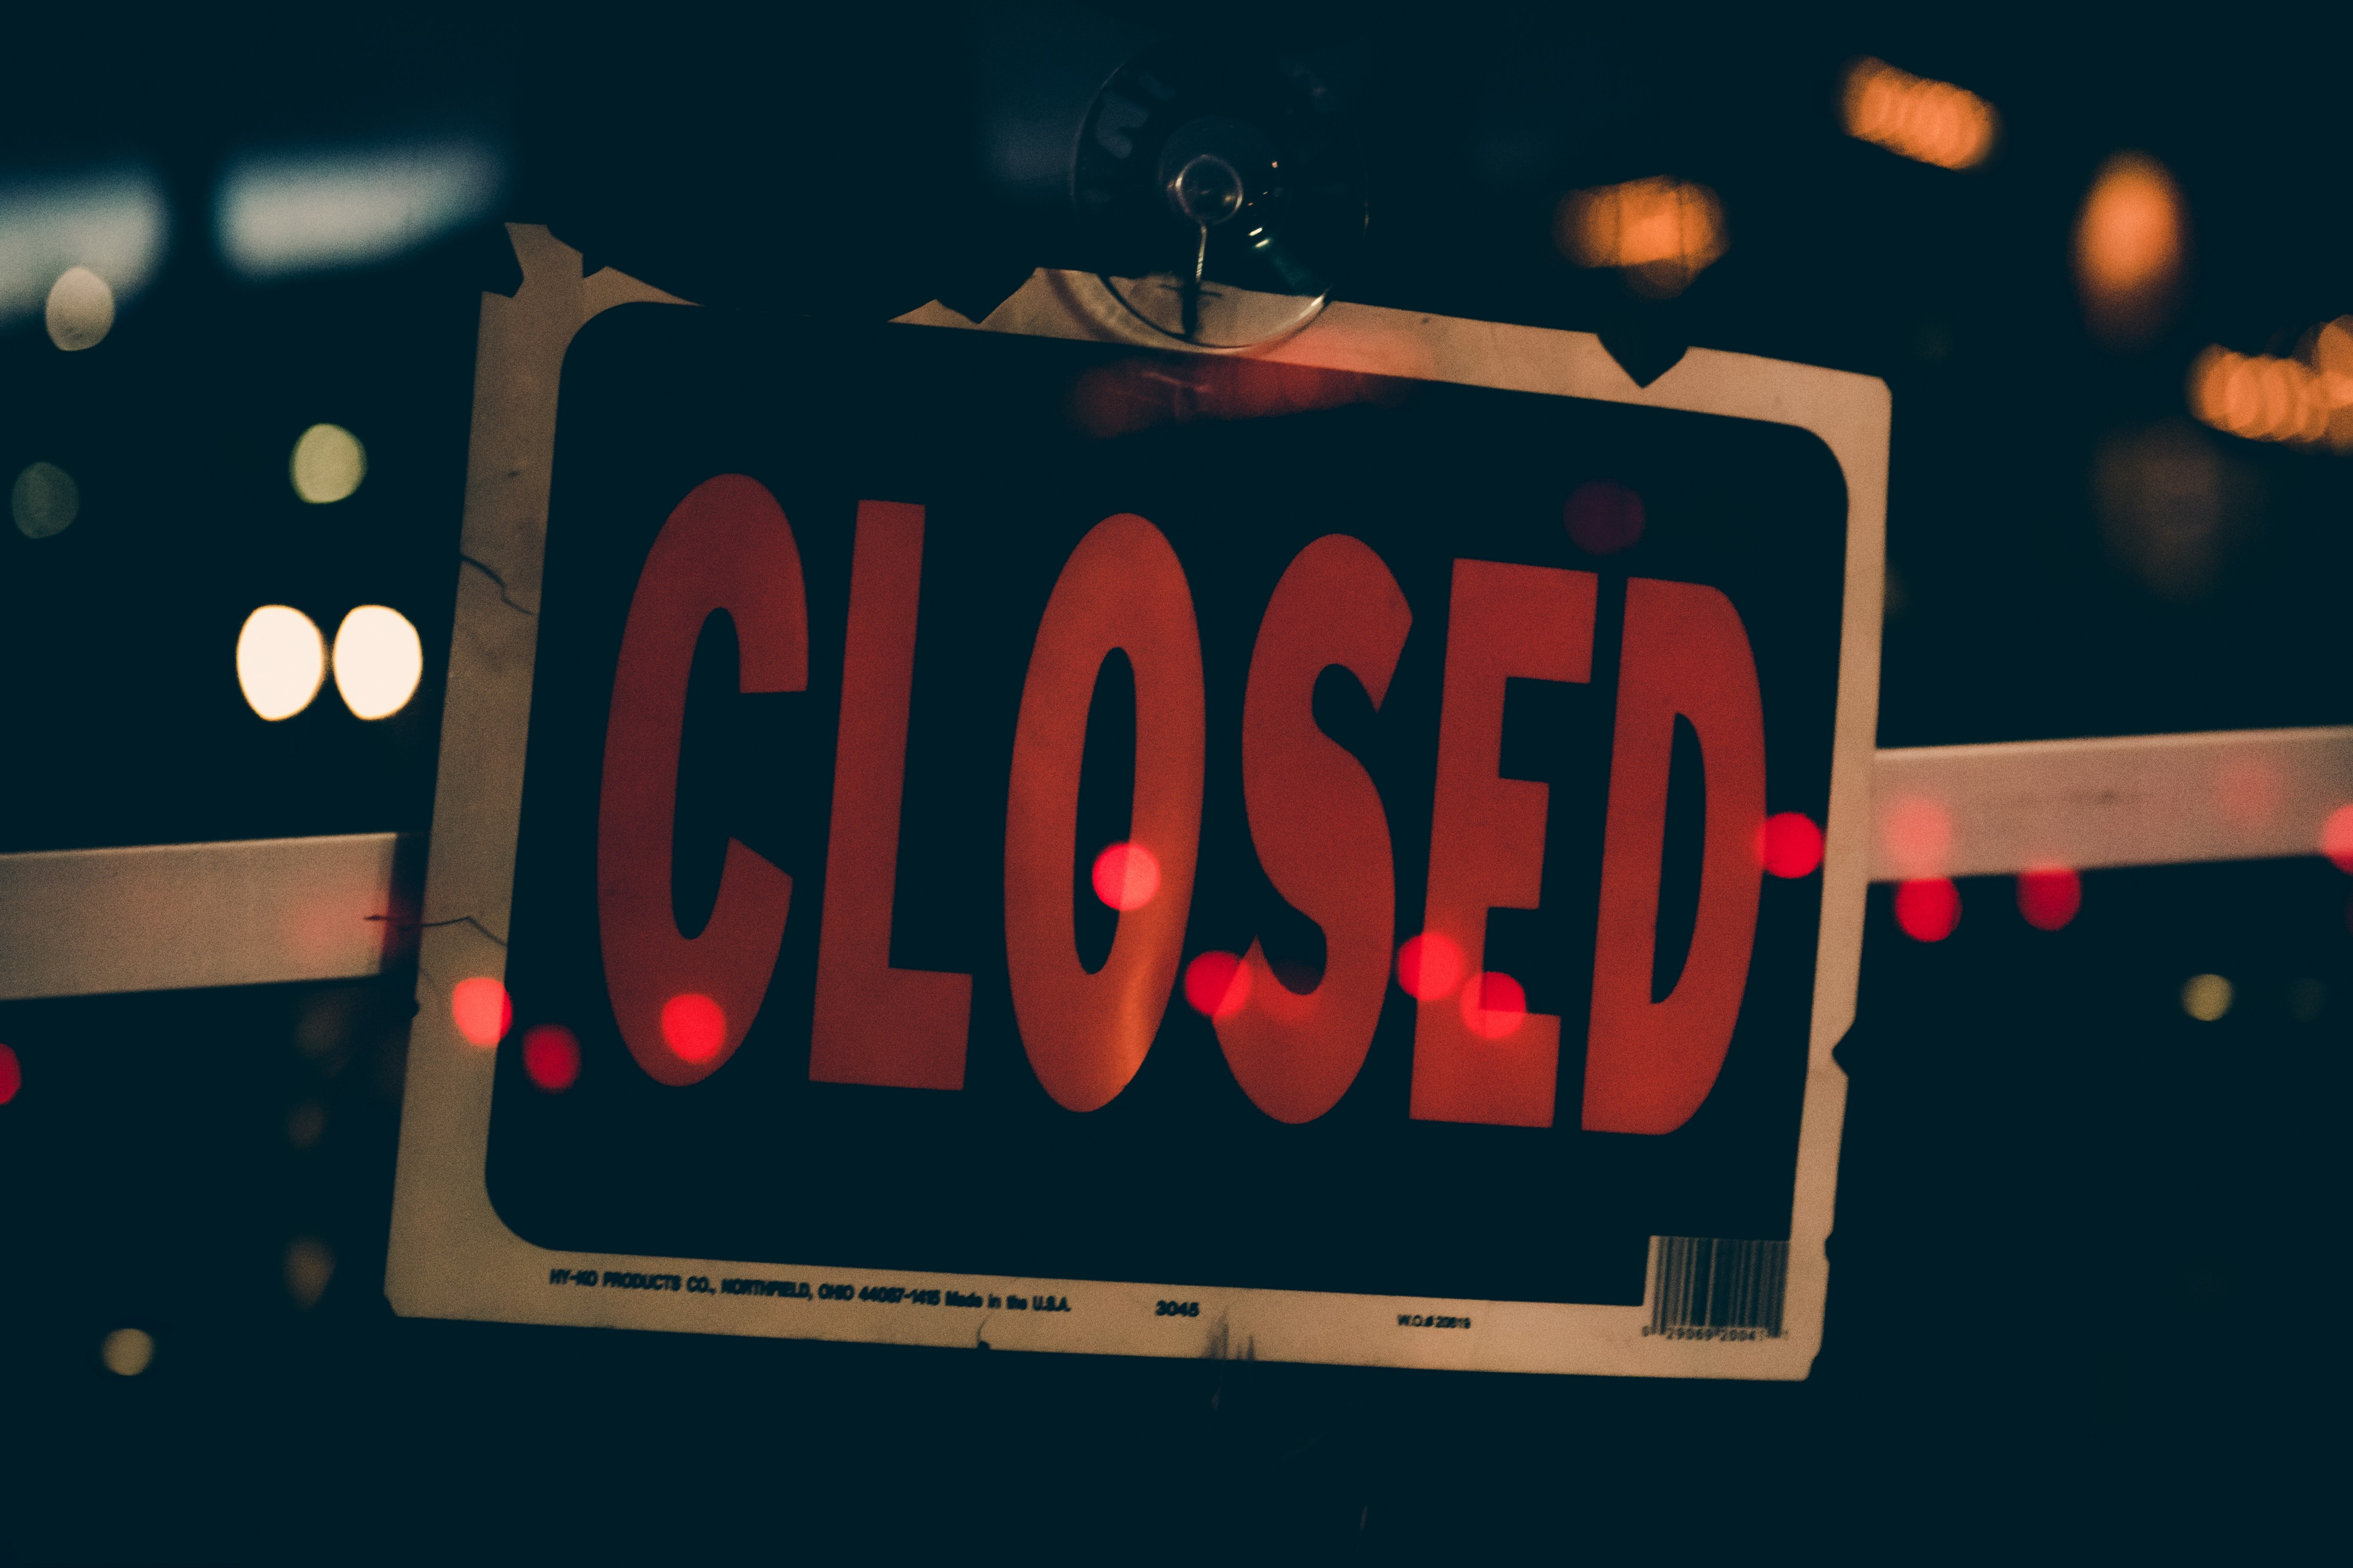 """A """"closed"""" sign with red letters on a black background."""